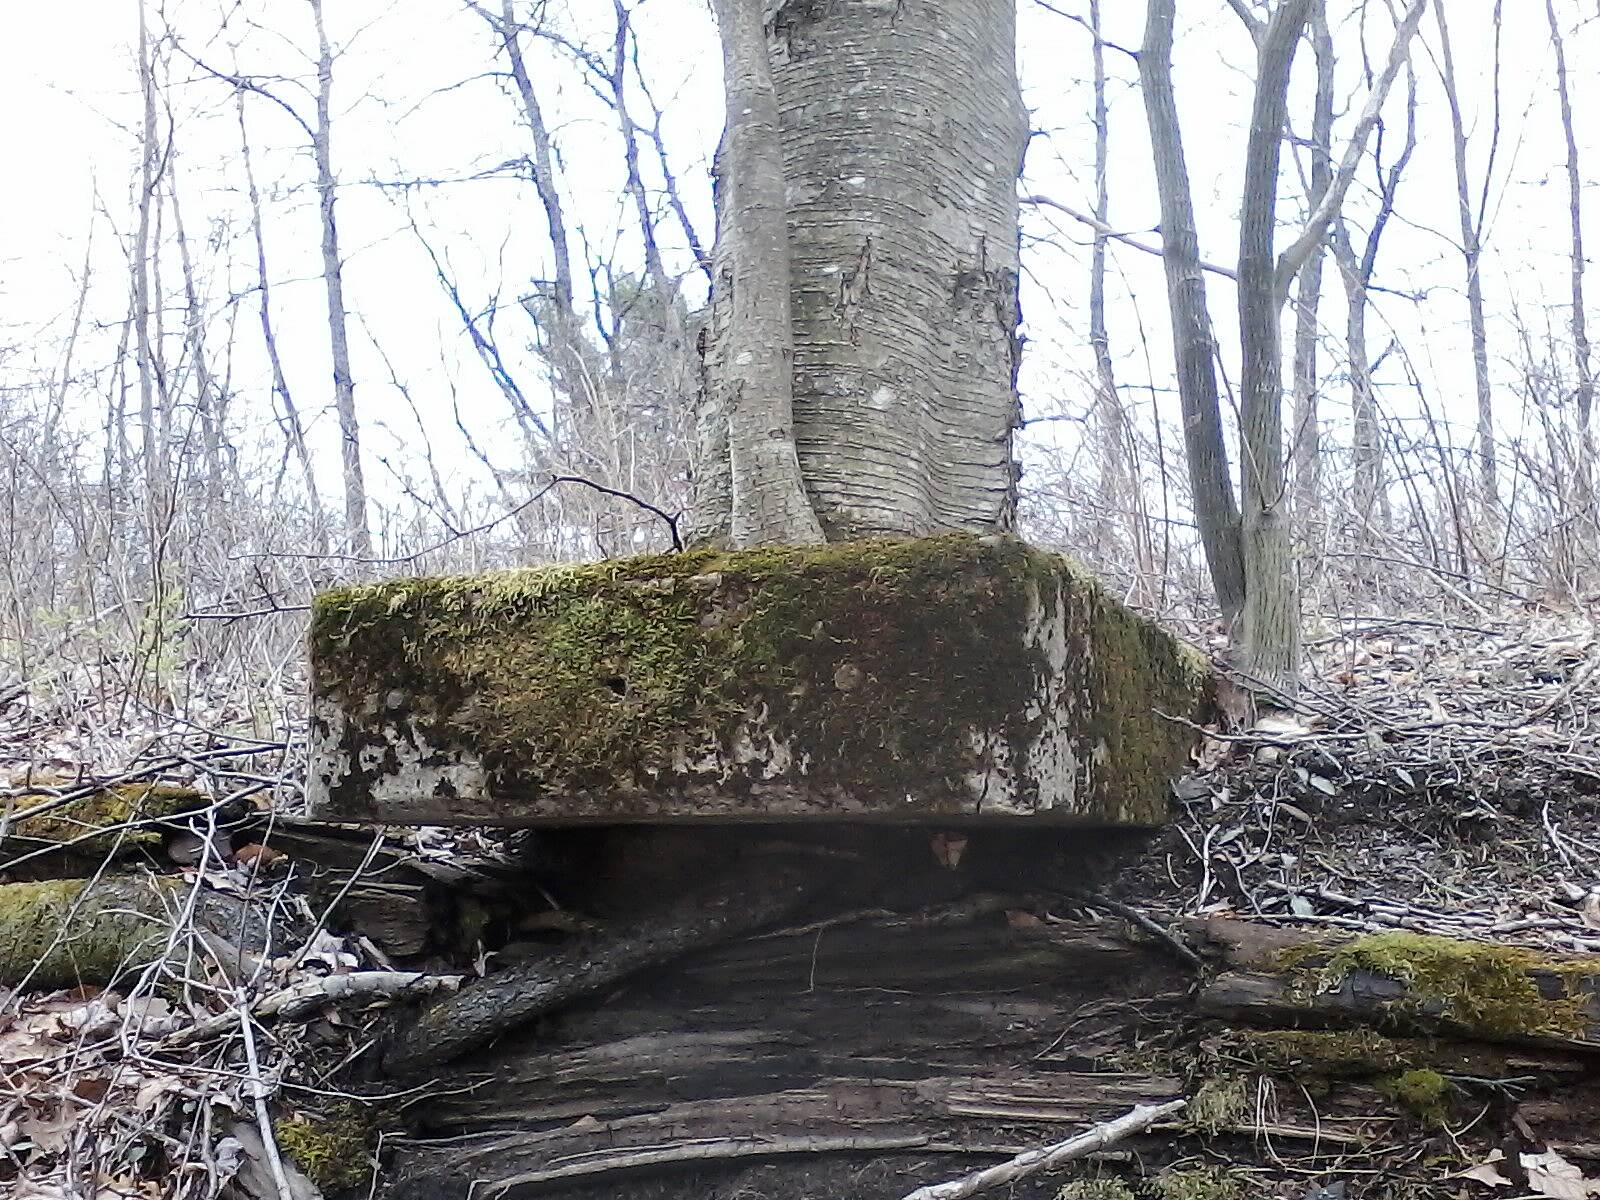 D&L Trail Interesting tree growth! Tree established its roots around some type of railroad facility structure.